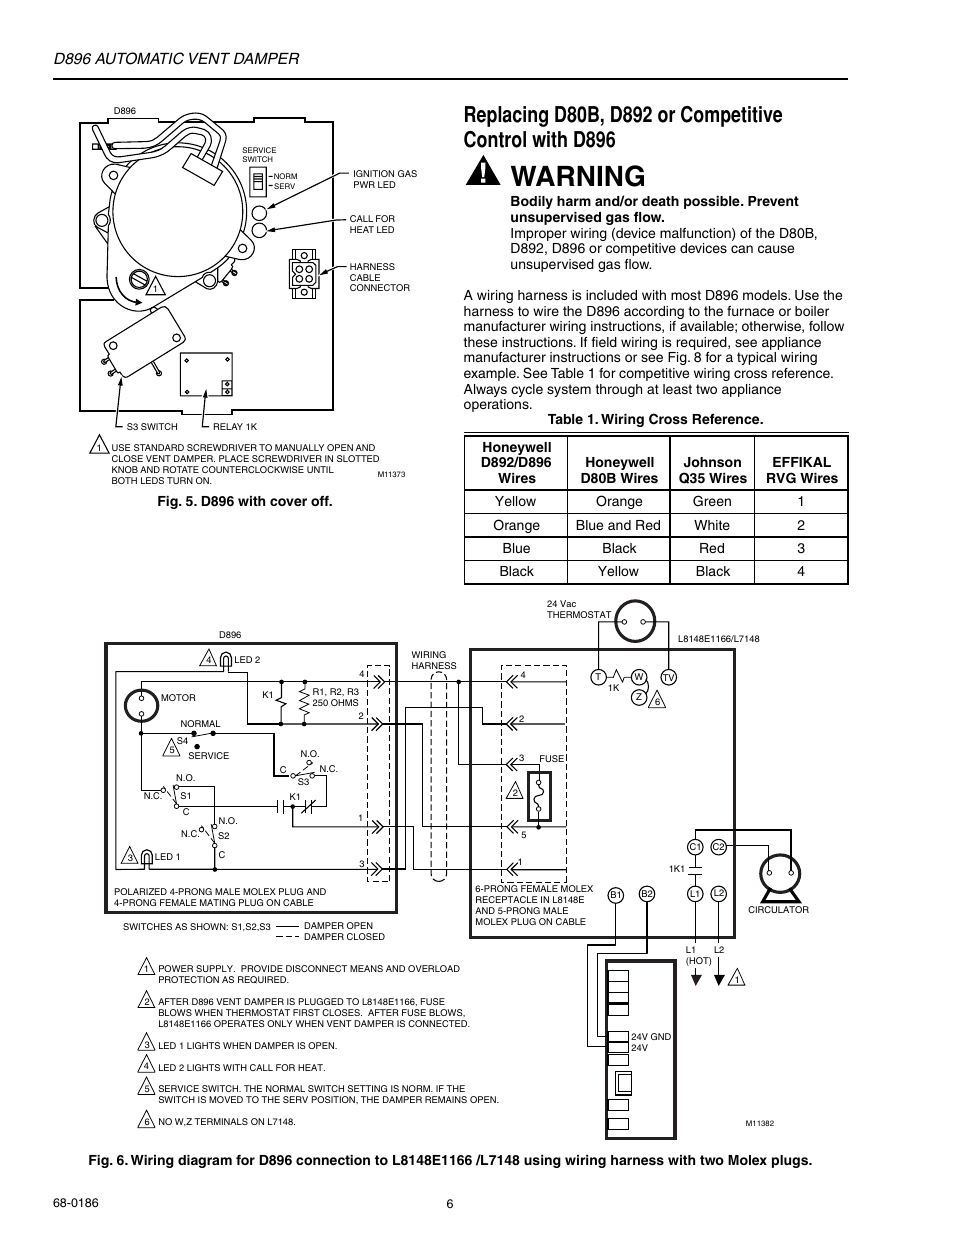 honeywell automatic vent damper d896 page6 warning, d896 automatic vent damper honeywell automatic vent automatic vent damper wiring diagram at bakdesigns.co